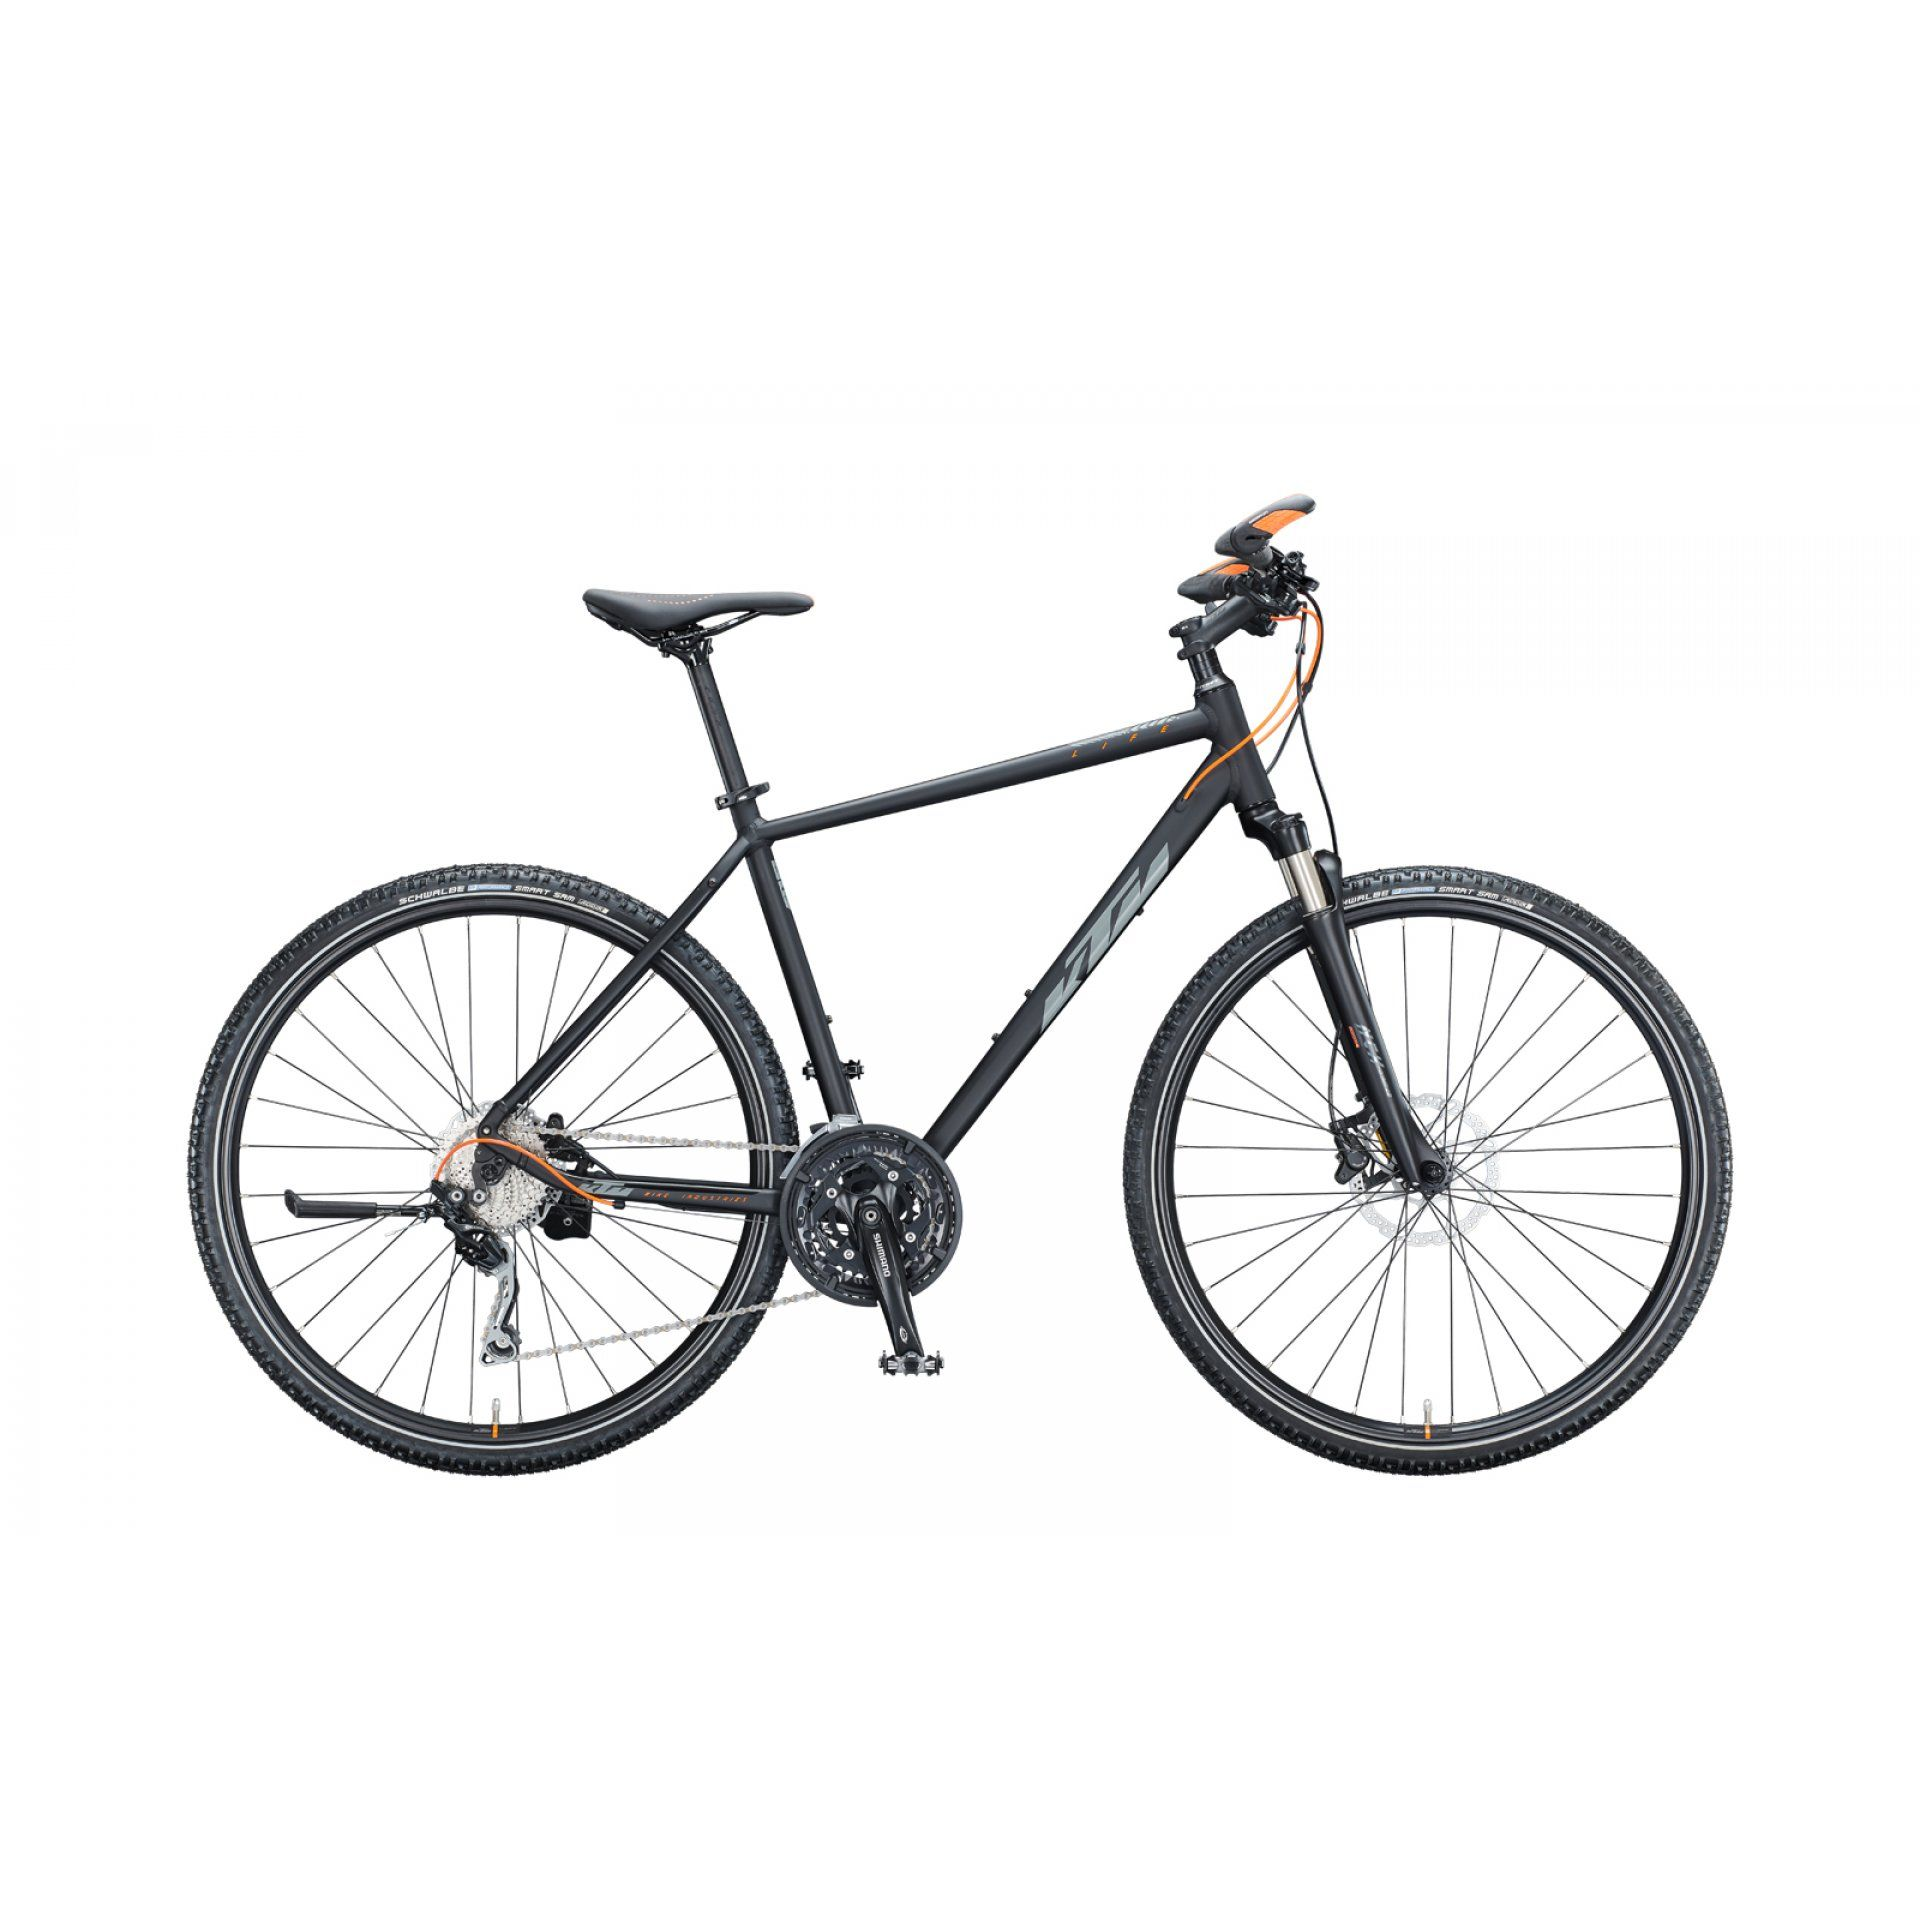 ROWER KTM LIFE ACTION H BLACK MATT|GREY|ORANGE 021202